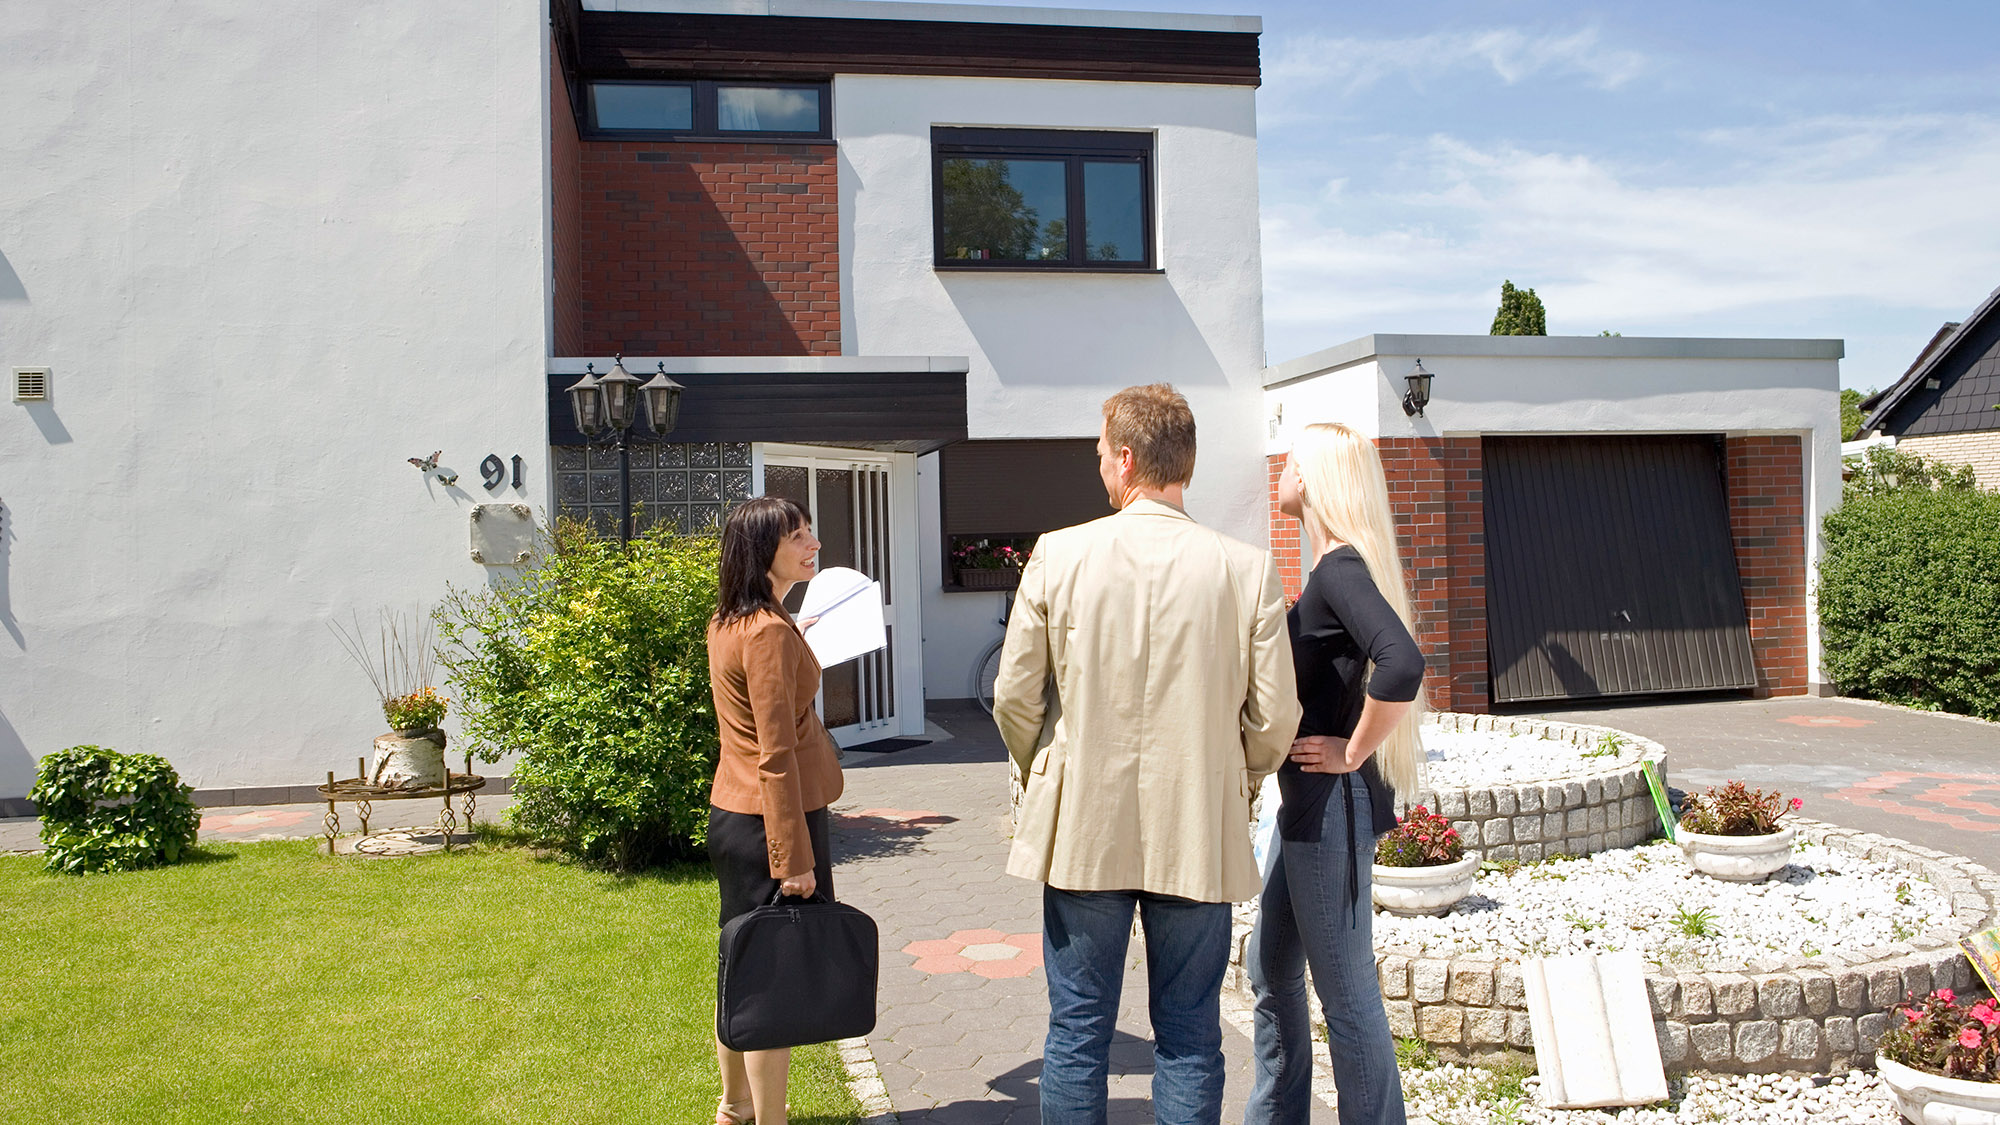 Using a Real Estate Agent To Sell Your Home vs DIY